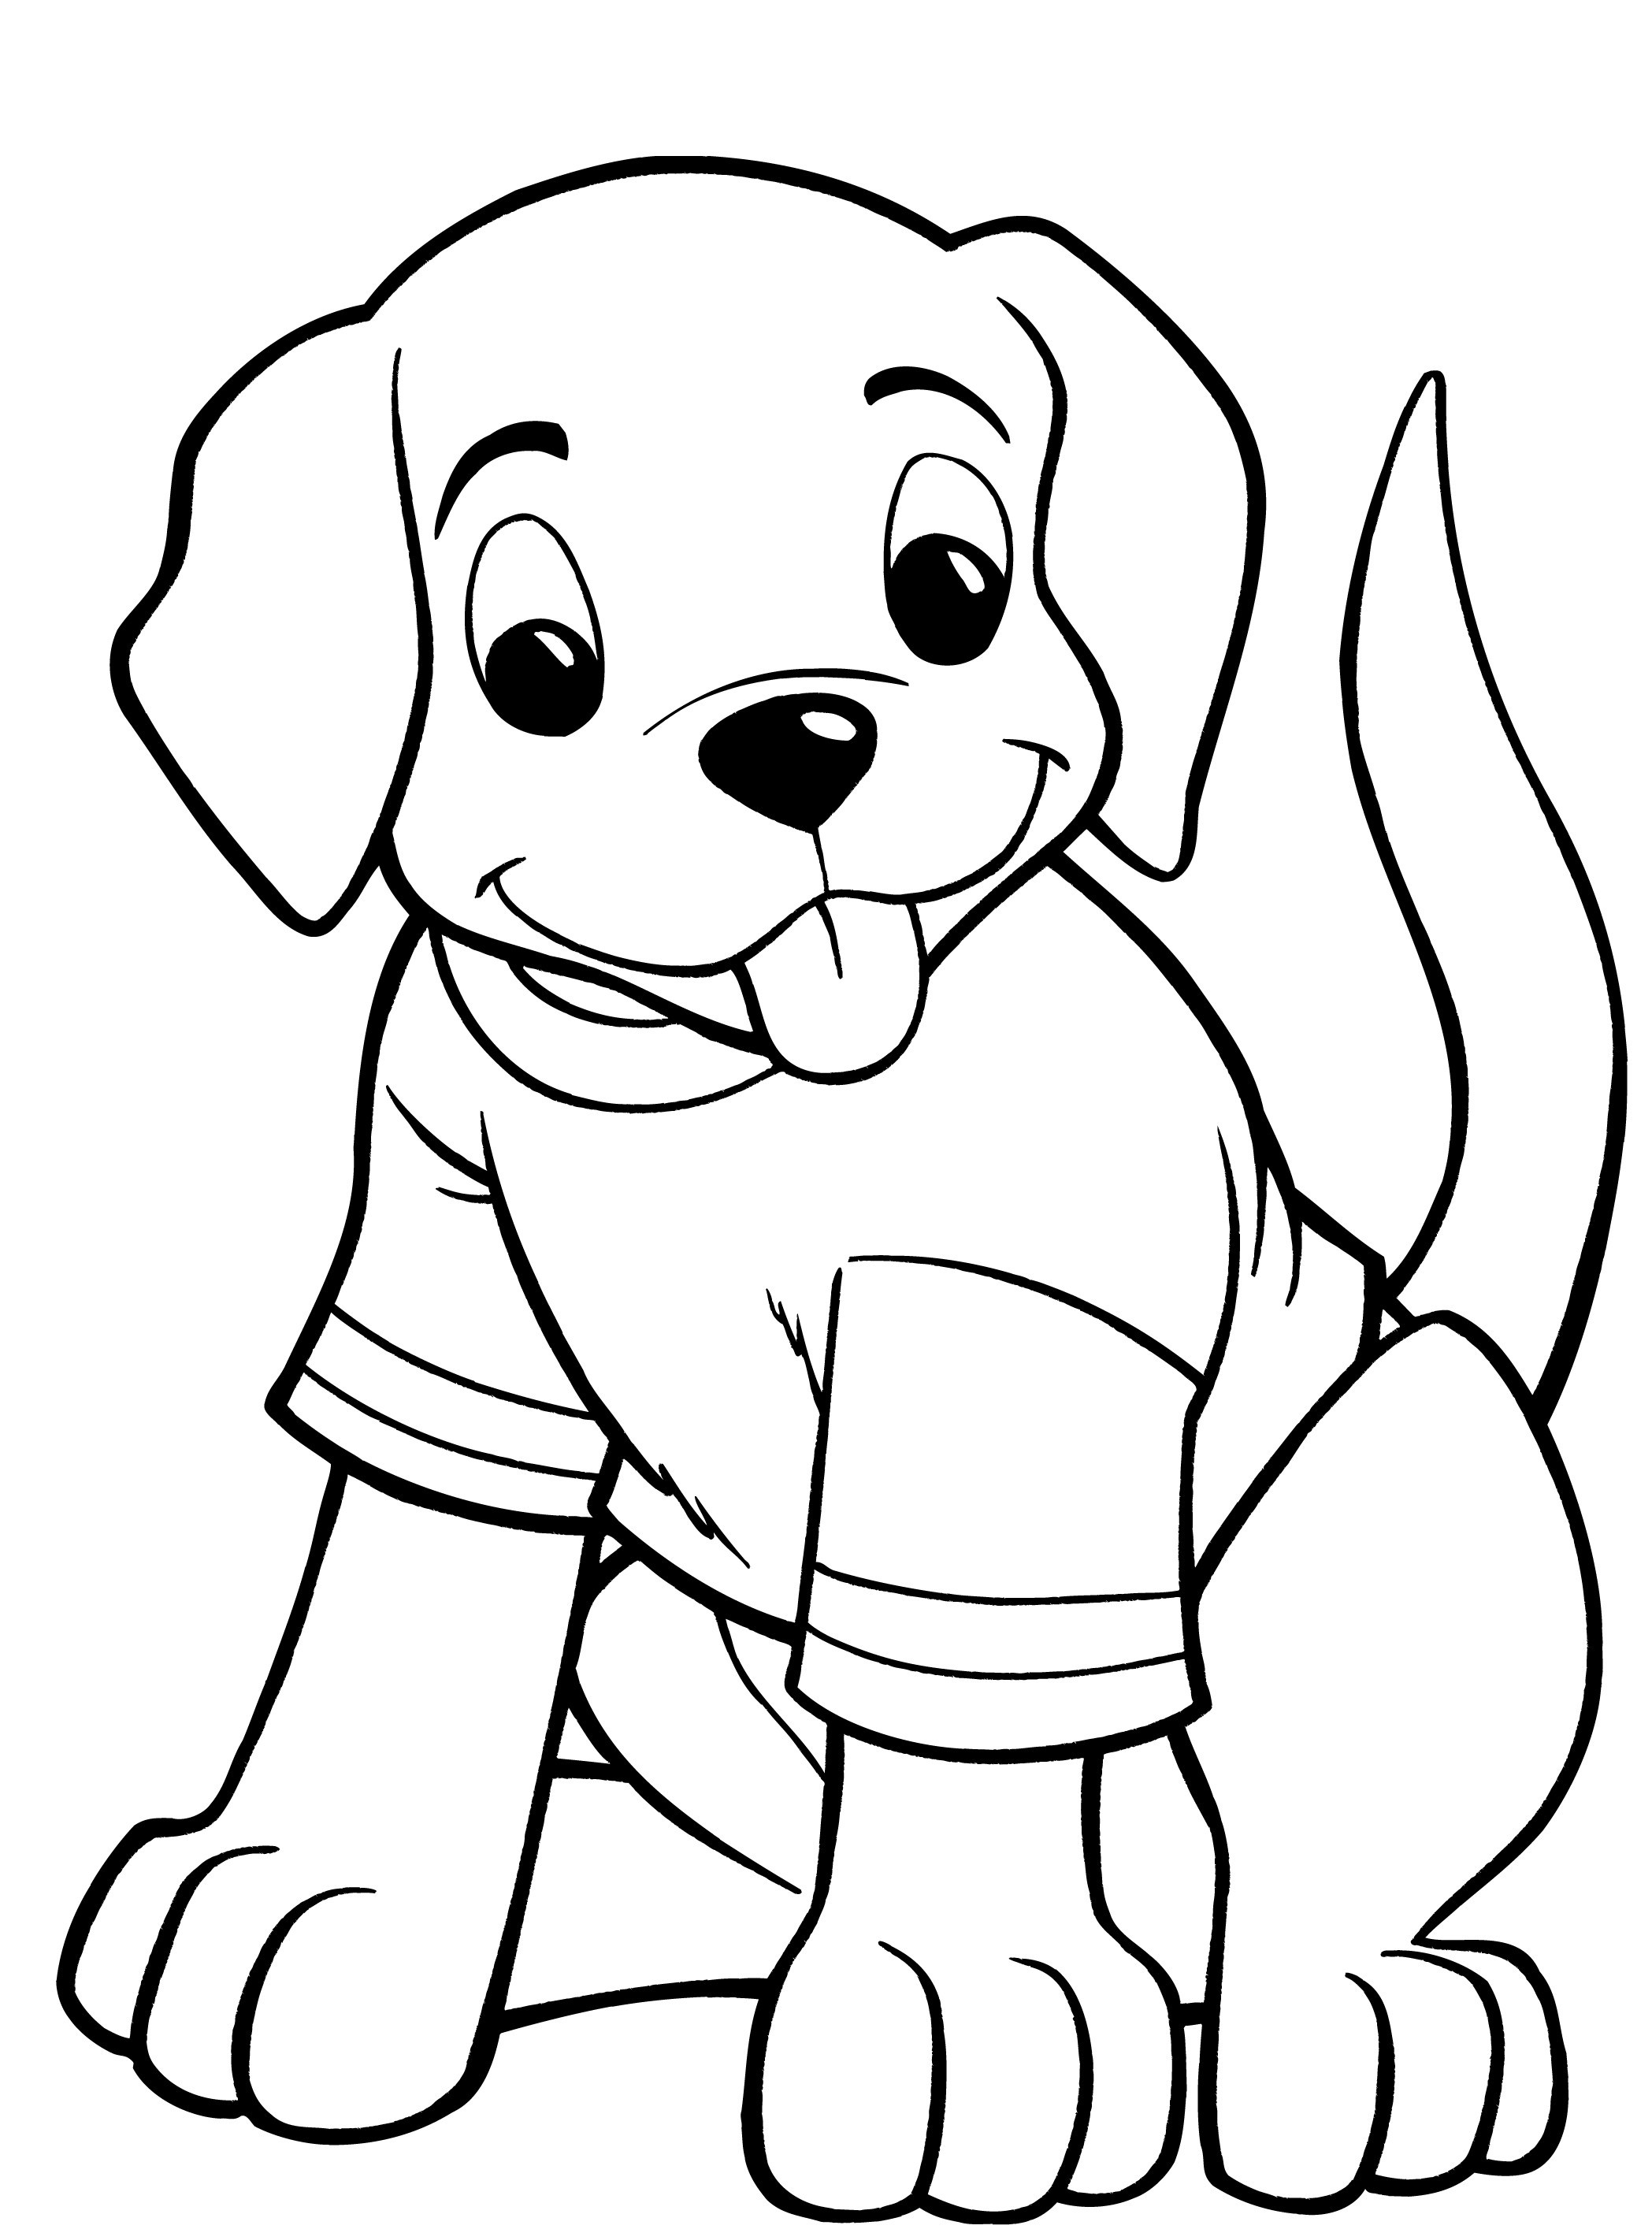 kids coloring puppy free printable puppies coloring pages for kids puppy kids coloring